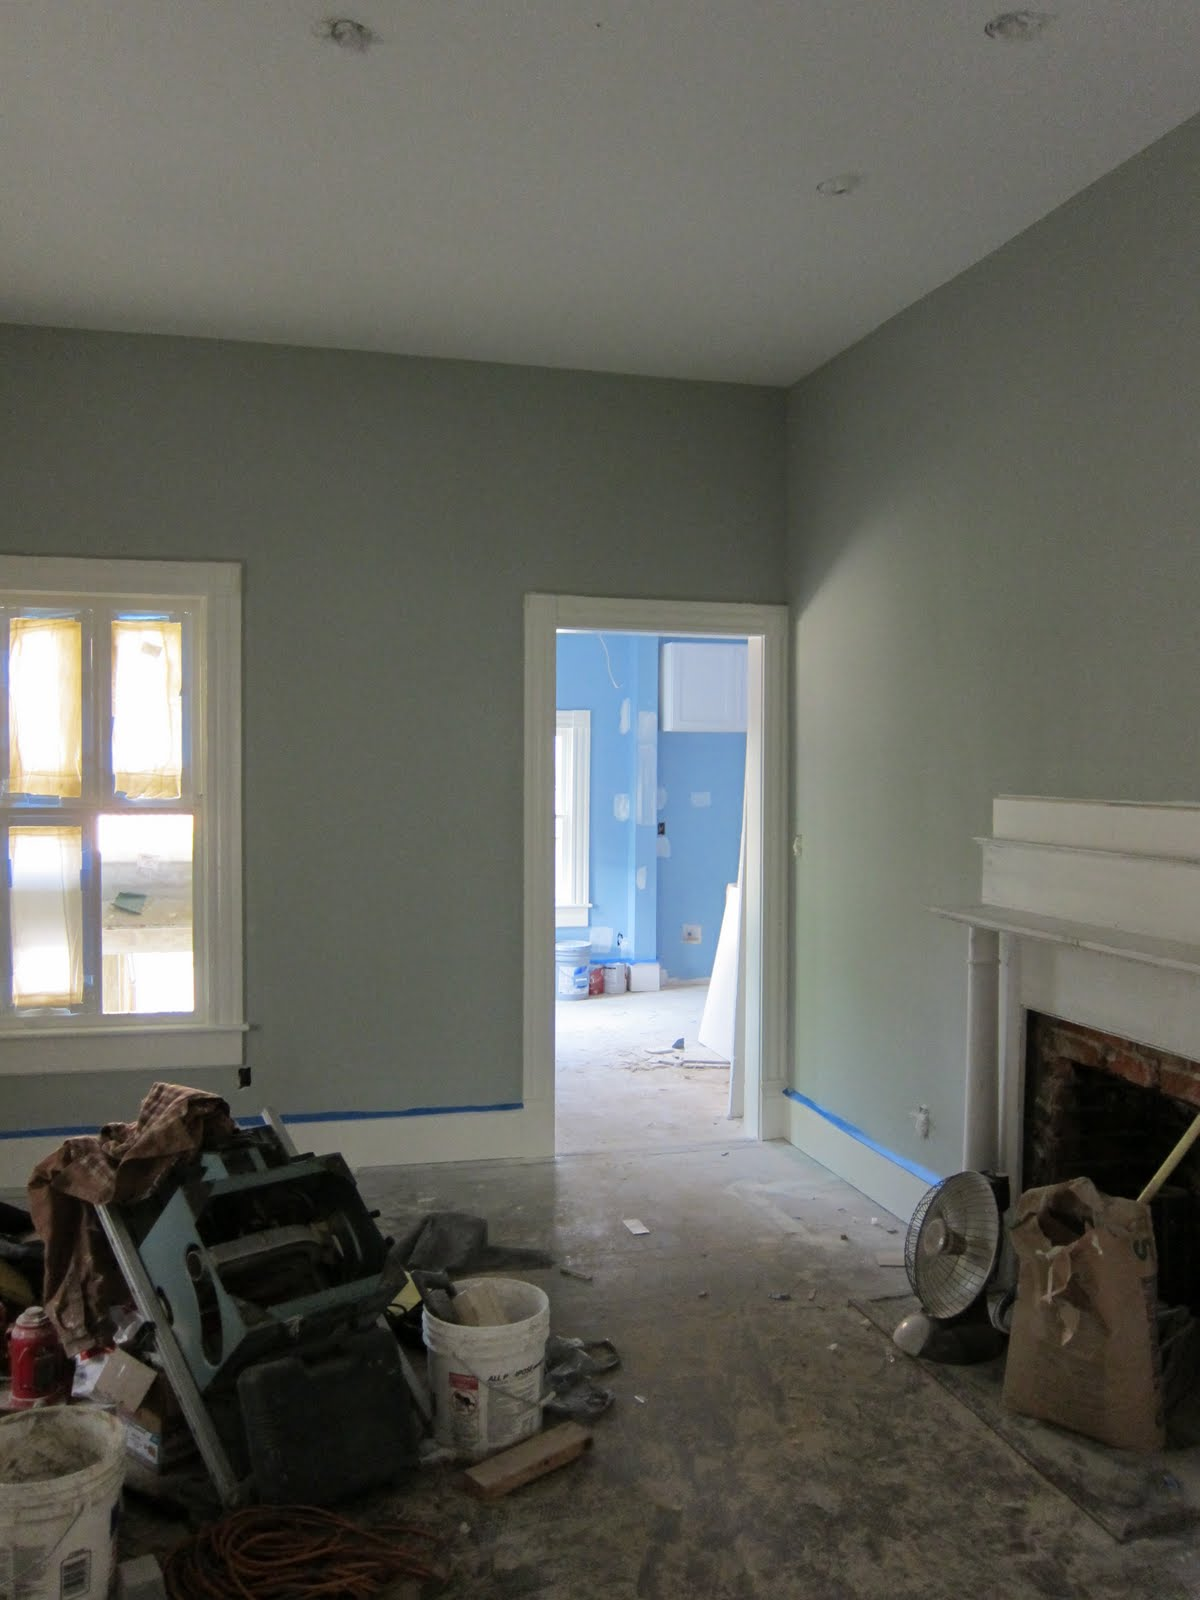 Petty home rainbow bright - Sherwin williams comfort gray living room ...